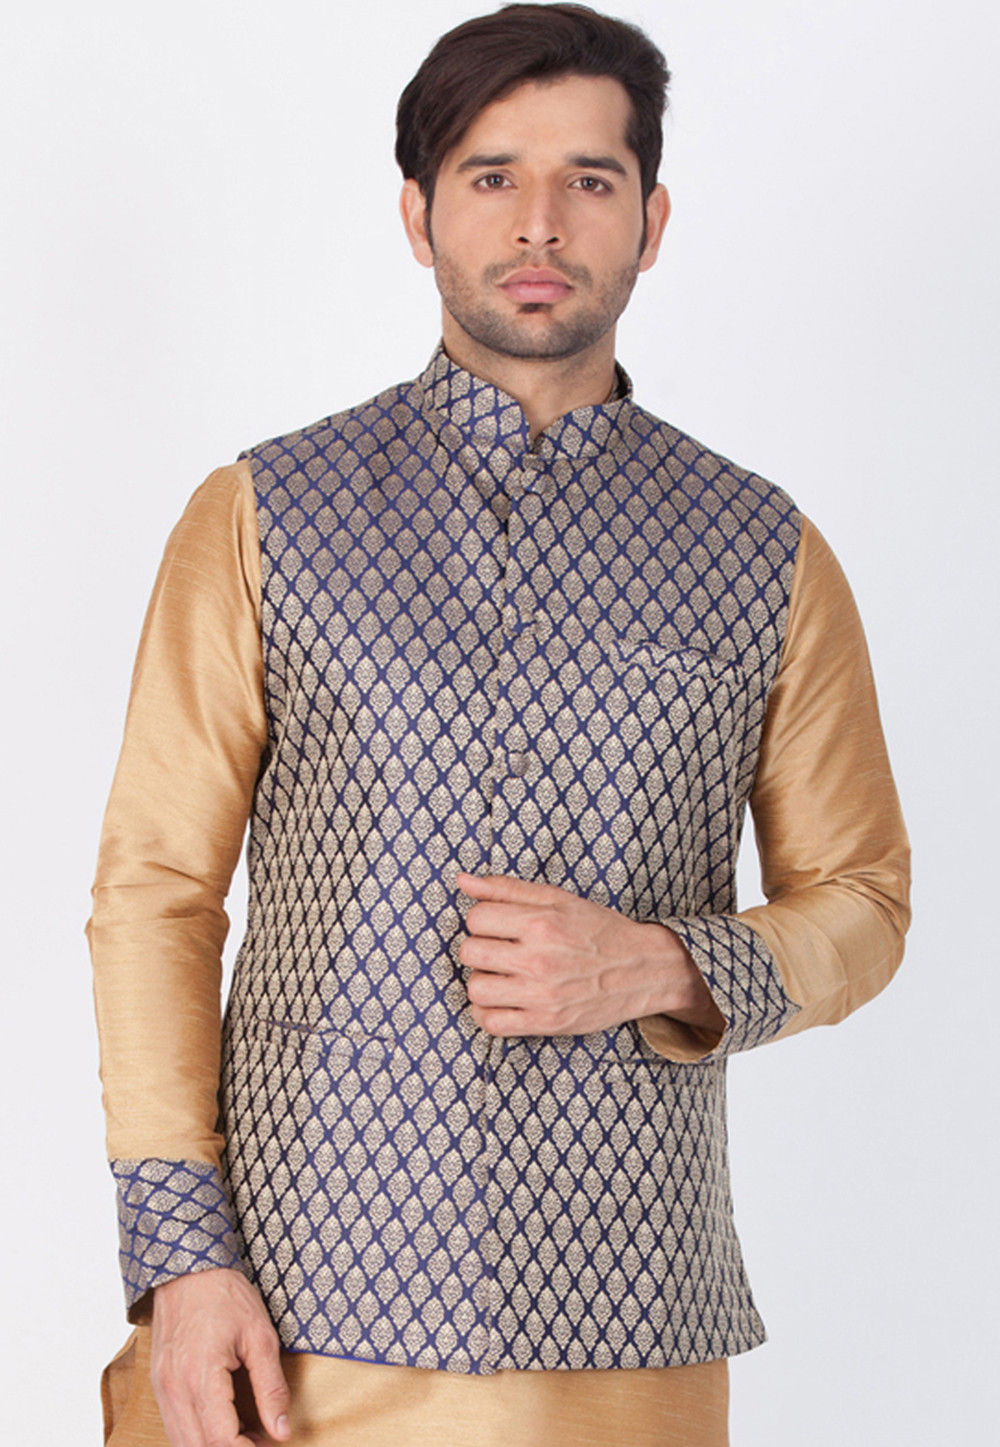 Woven Art Silk Jacquard Nehru Jacket in Navy Blue and Gold